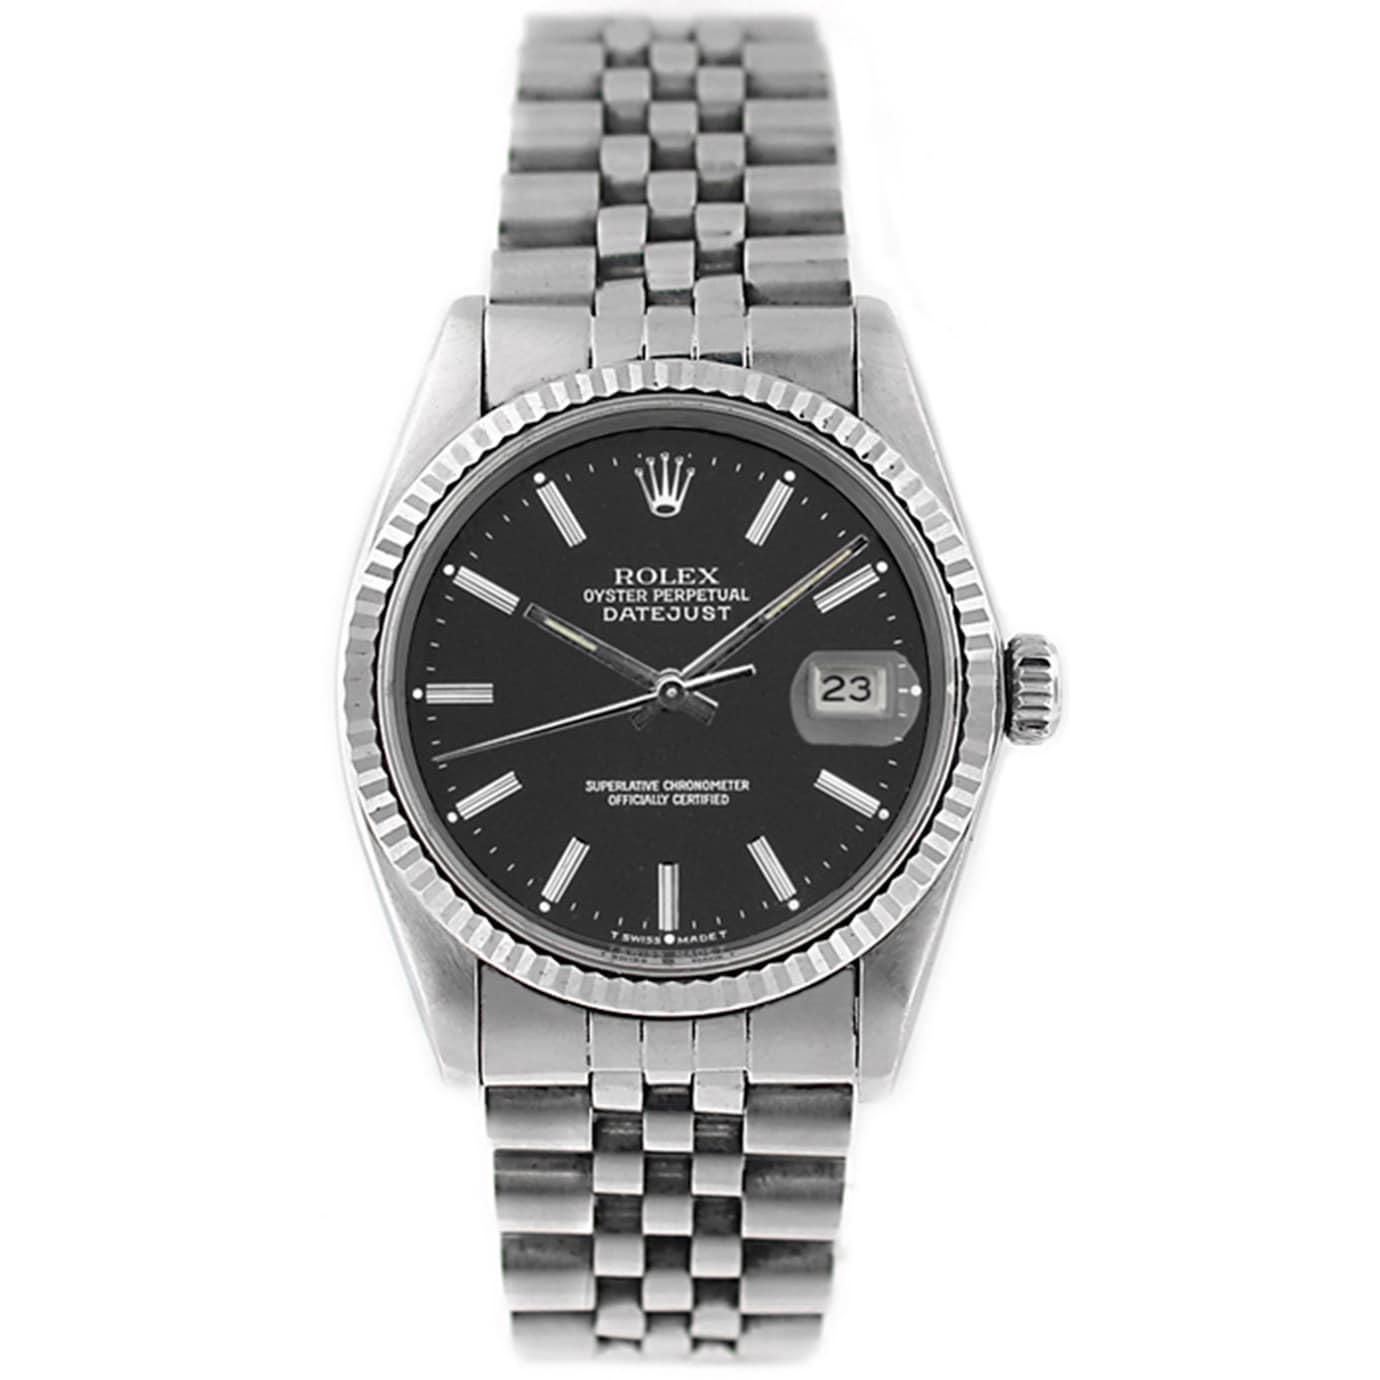 Stainless Rolex Pre Owned Rolex Men S Datejust 16014 Stainless Steel And White Gold Black Stick Watch